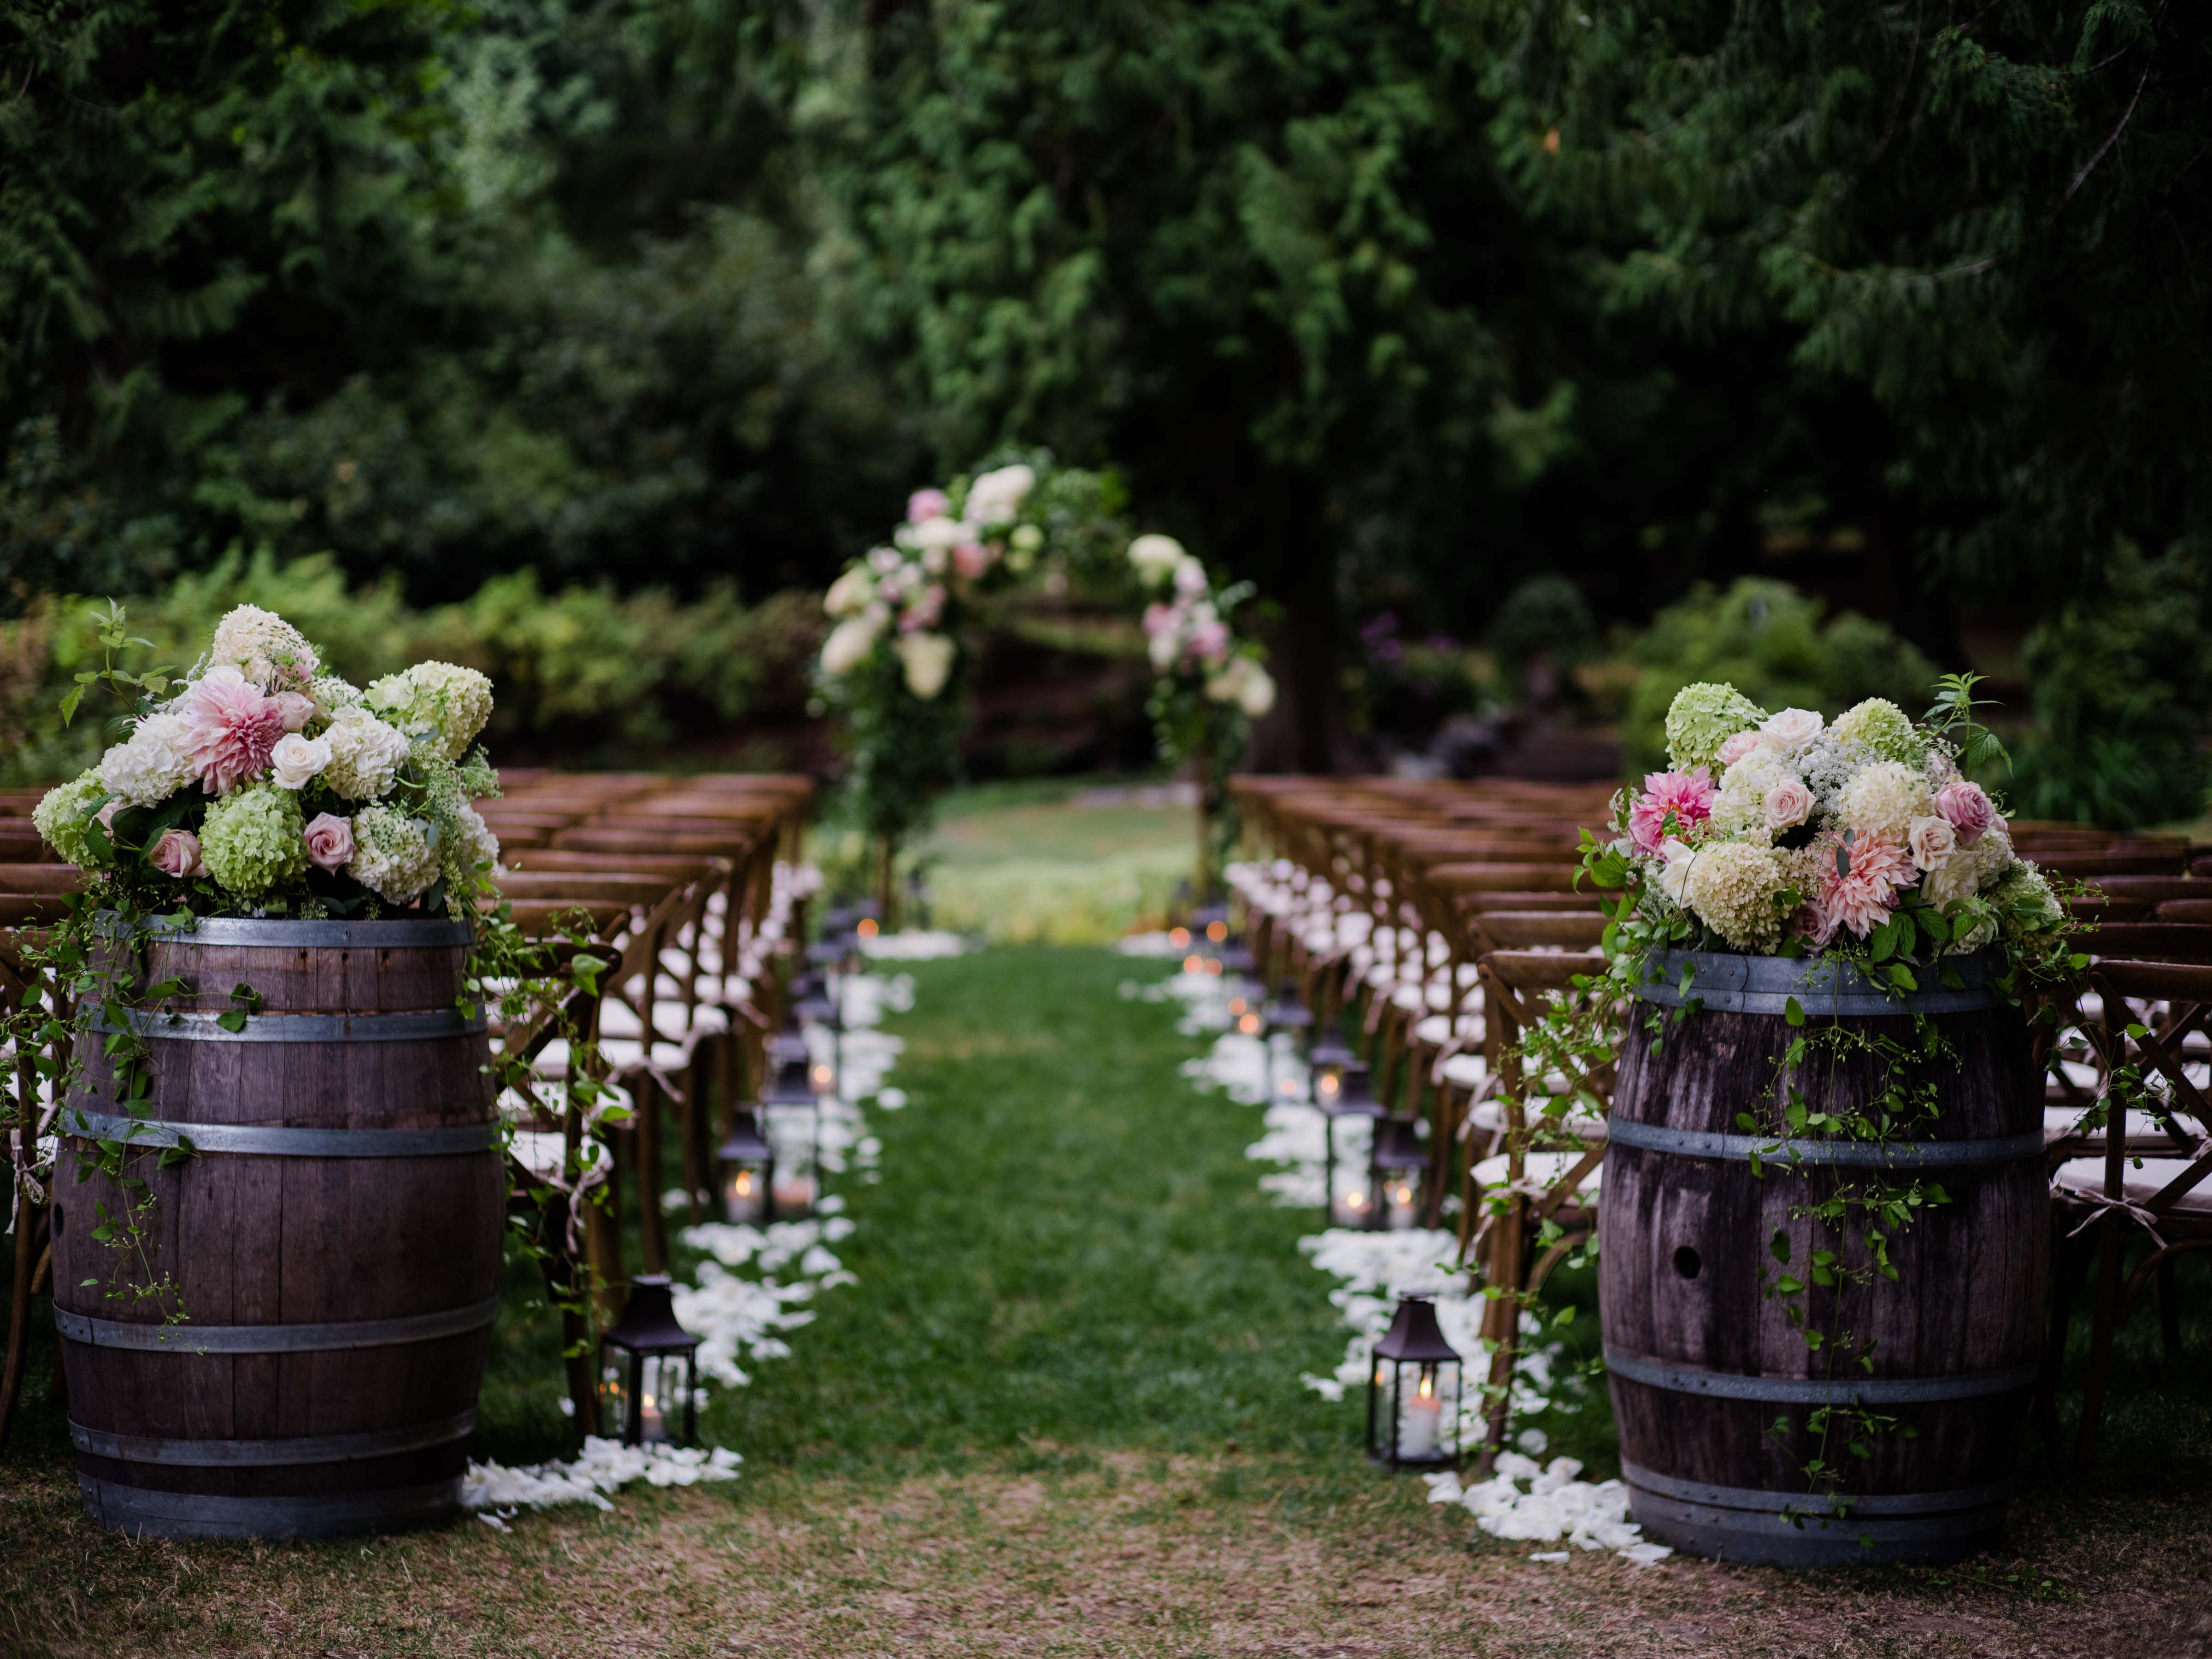 Wedding ceremony with arch - A Luxe Chateau Lill Wedding designed by Flora Nova Design Seattle